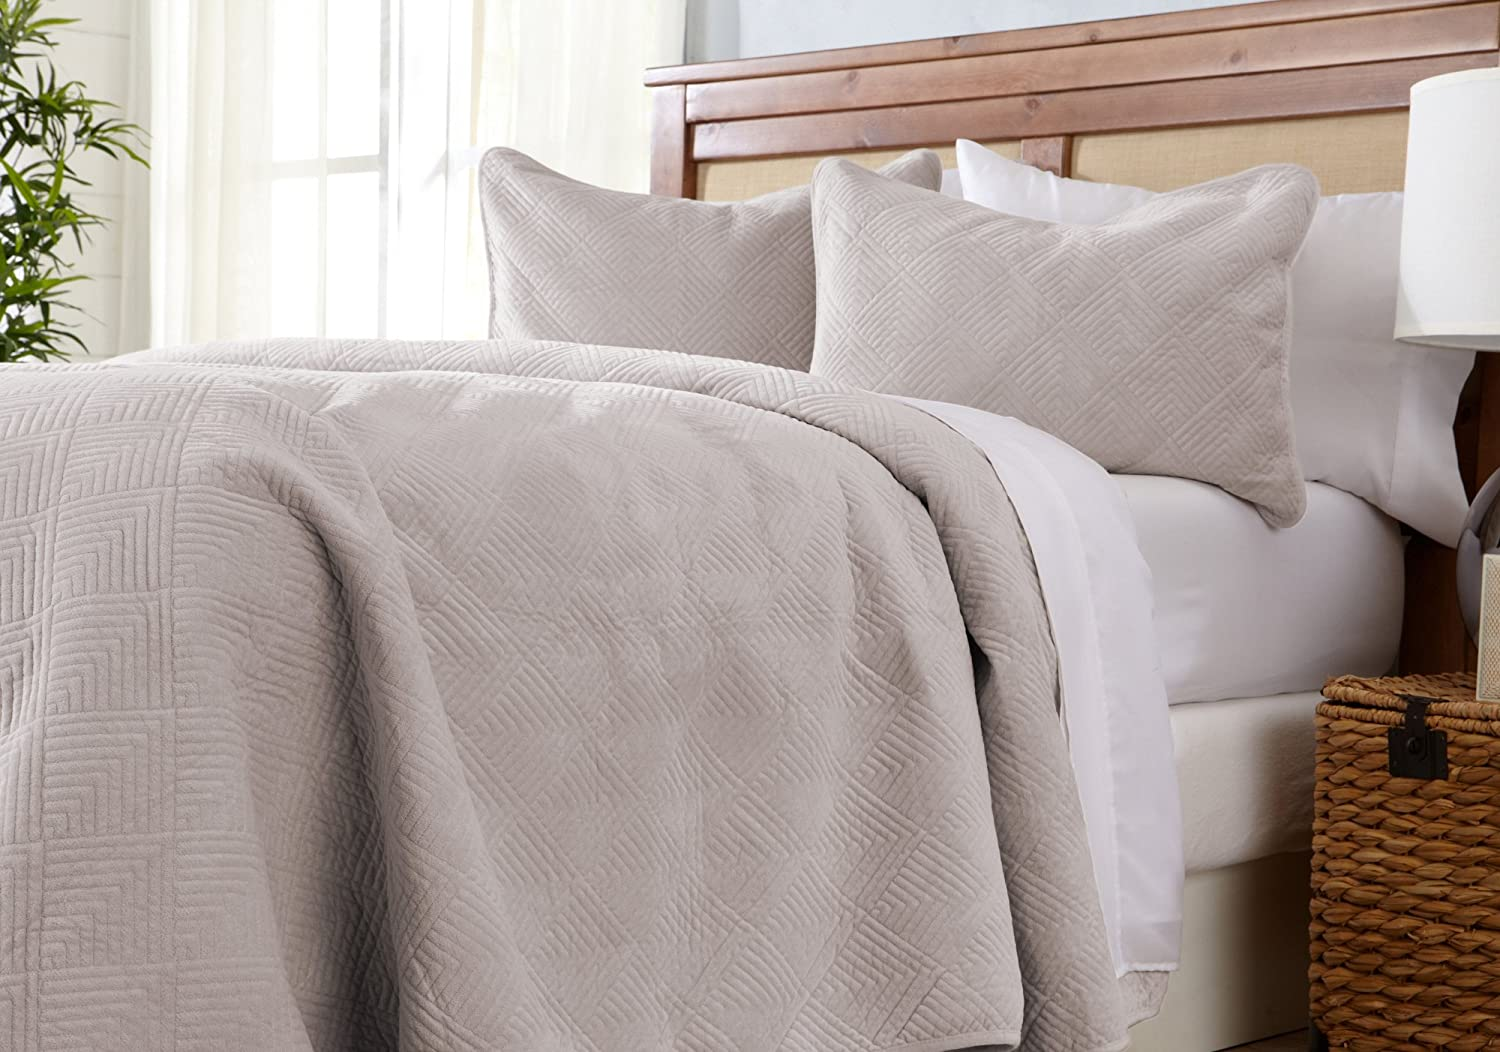 Great Bay Home Velvet Quilt Bedding Set, Luxury Diamond Pattern Quilted 3-Piece Solid Coverlet. Velvet Top with 70% Cotton Filling. (King, Light Taupe)